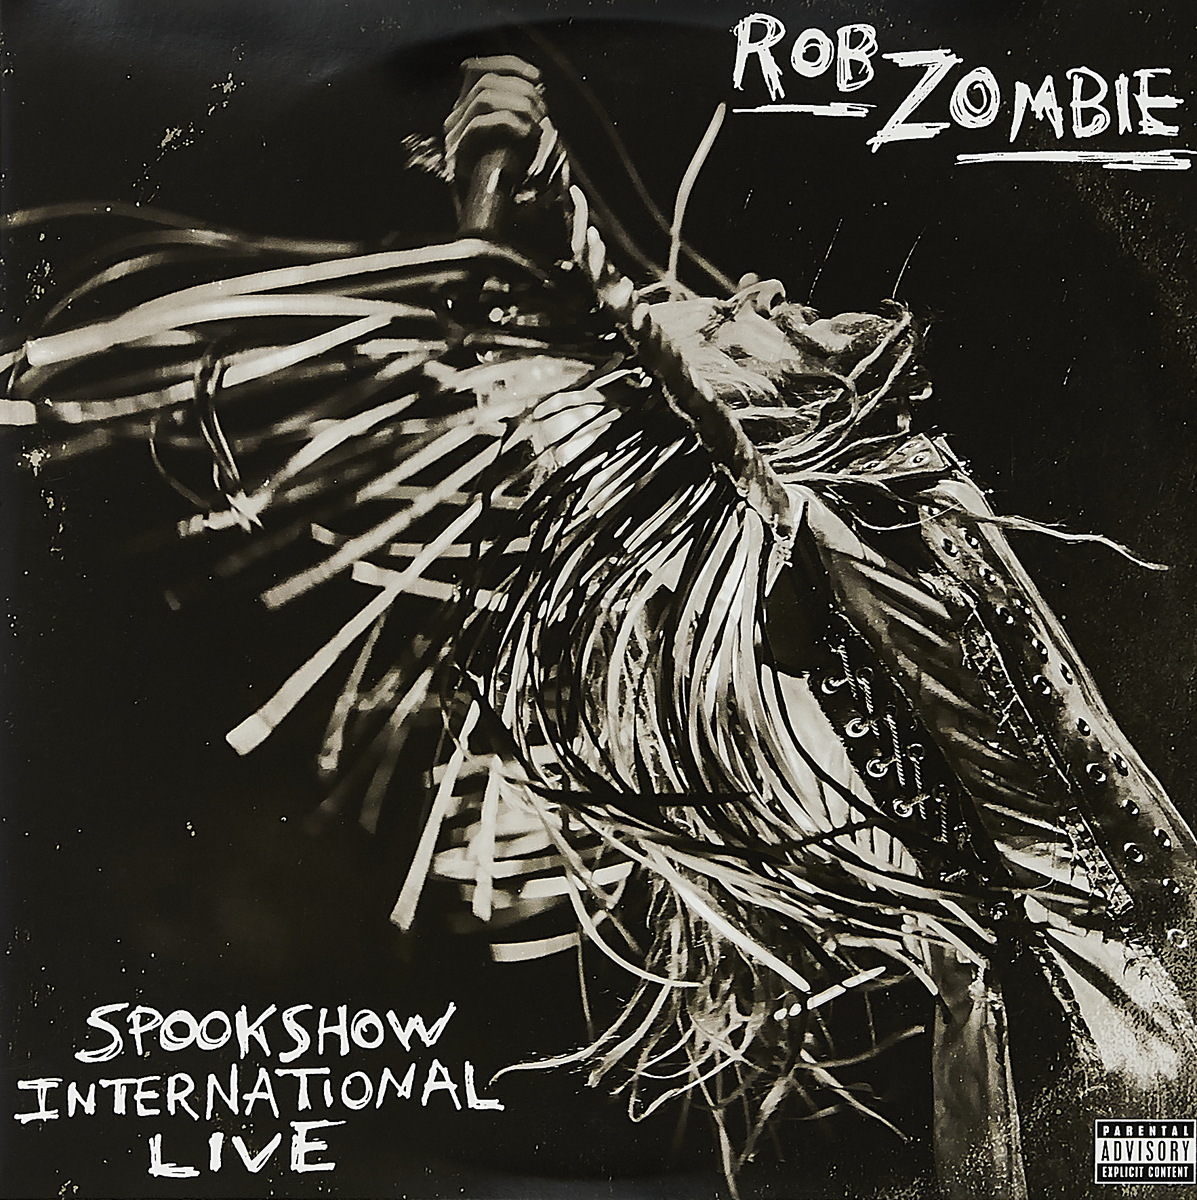 лучшая цена Роб Зомби Rob Zombie. Spookshow International Live (2 LP)